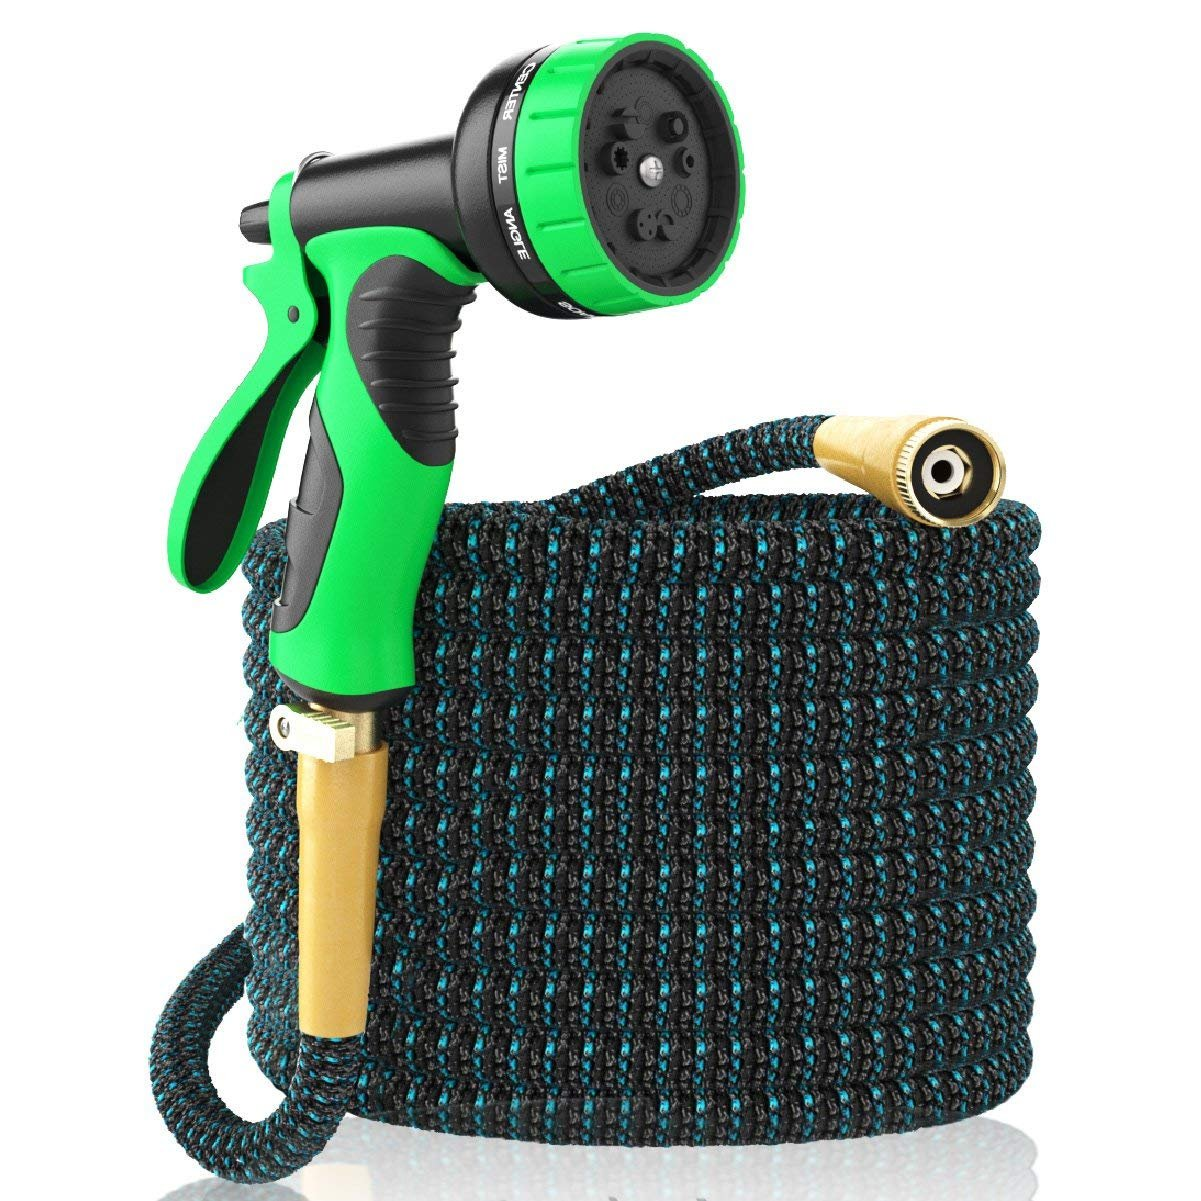 [NEW 2018] Expandable Garden Hose 50Ft Extra Strong – Brass Connectors w/Protectors 100% No-Rust & Leak, 9-Way Spray Nozzle - Best Water Hose for Pocket Use - 100% Flexible Expanding up to 50 ft